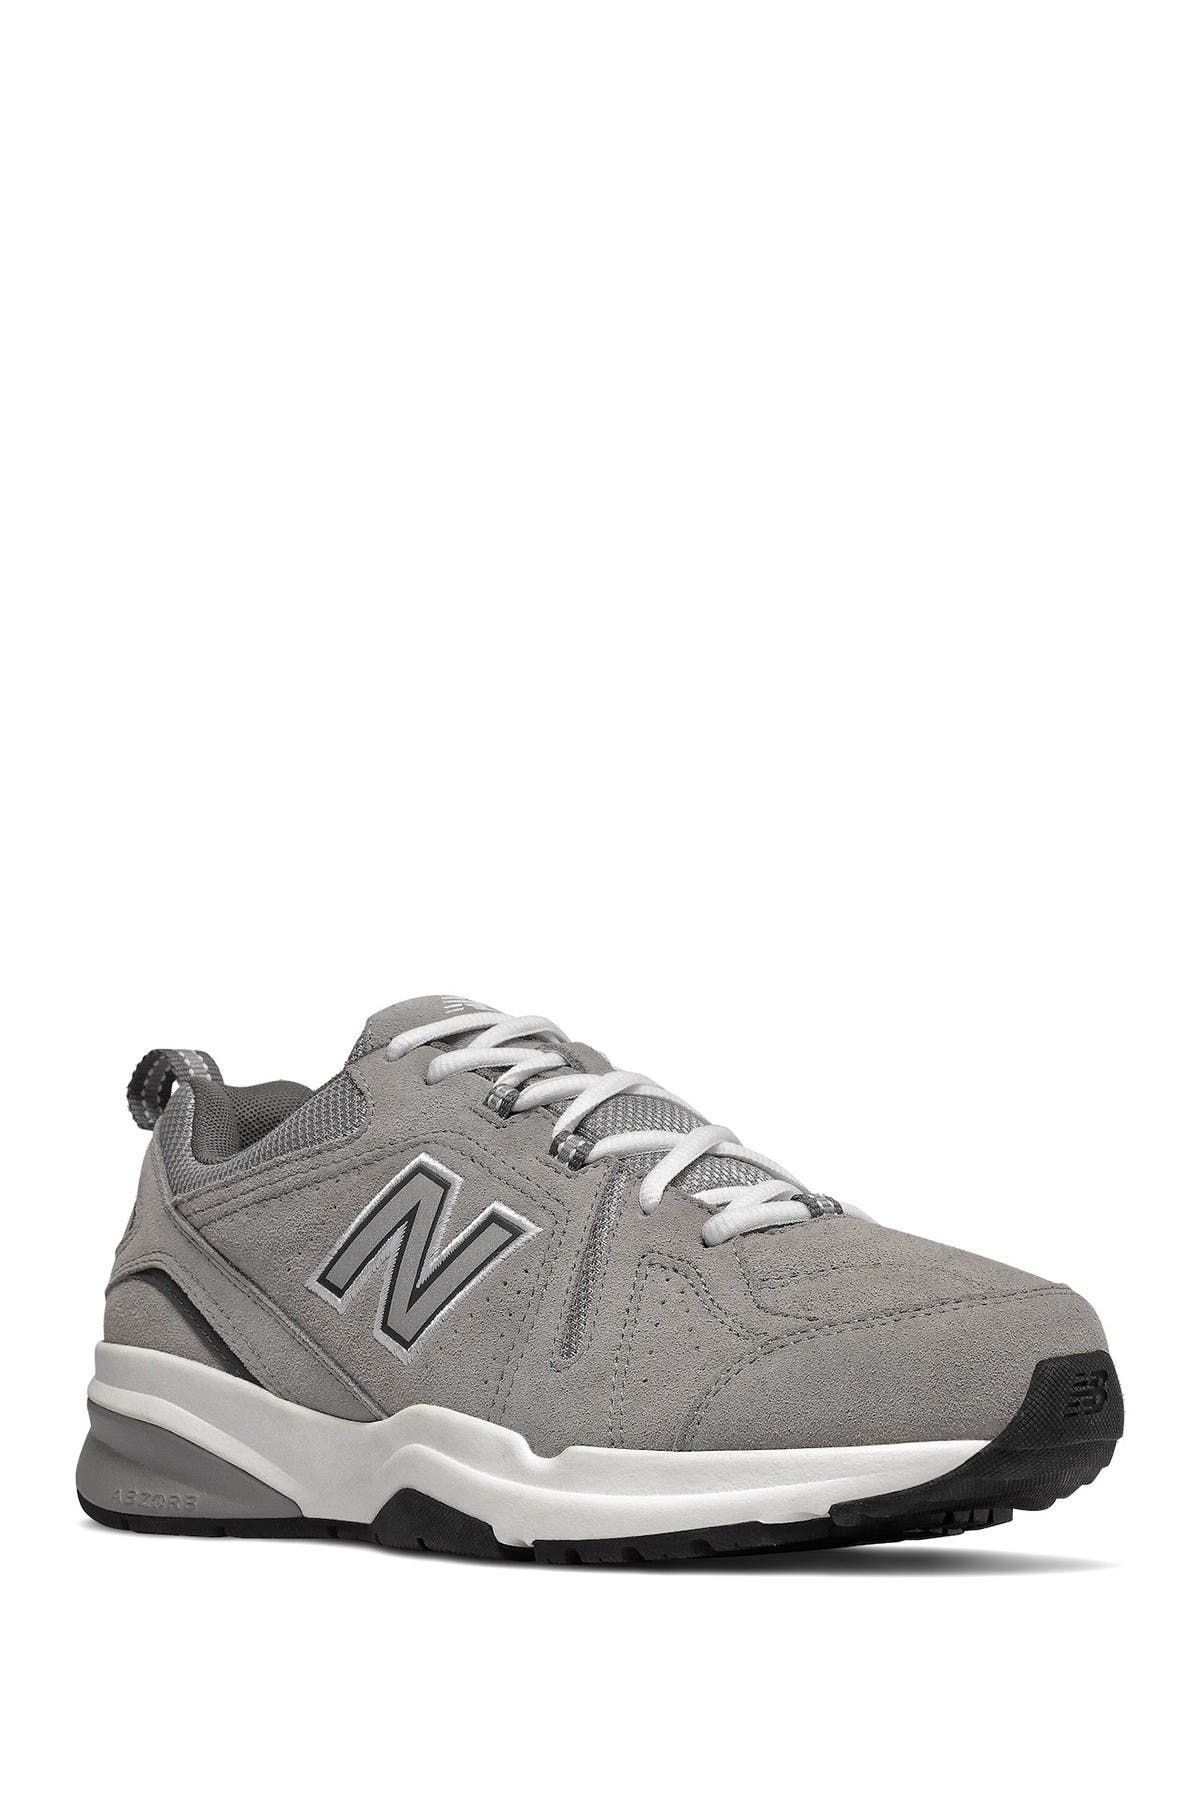 Image of New Balance MX608UG5 Training Sneaker